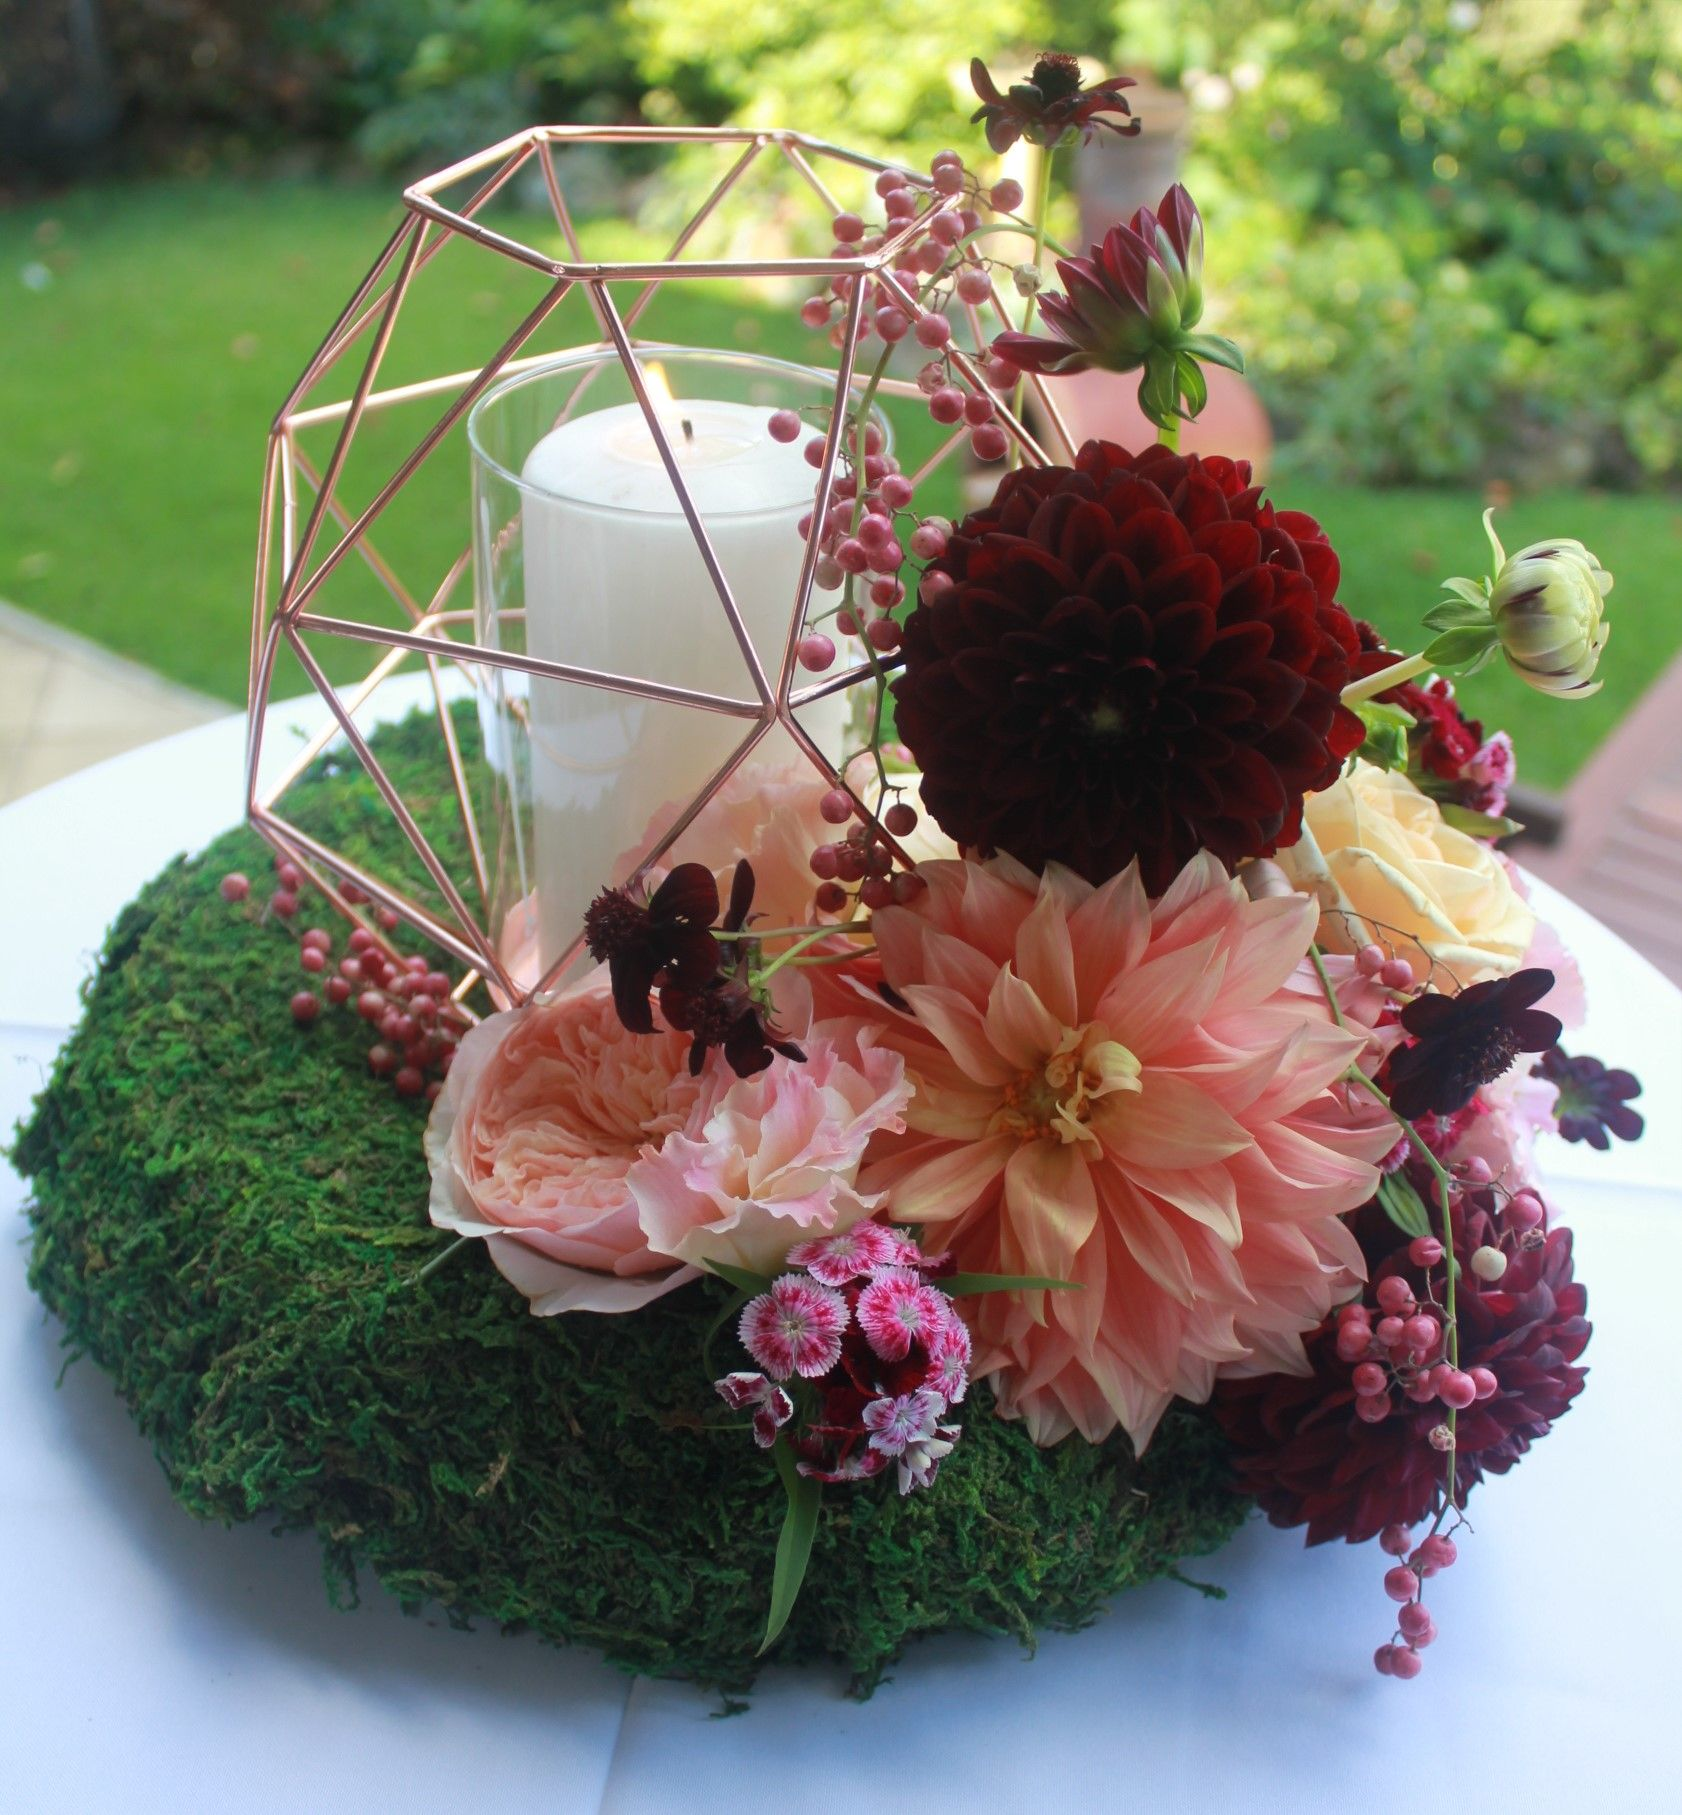 Geometric Copper candle holder with autumn tone flowers, Dahlia, David Austin Roses, Pepper Berry & Cosmos. Created by Poppies and peas Floral Design